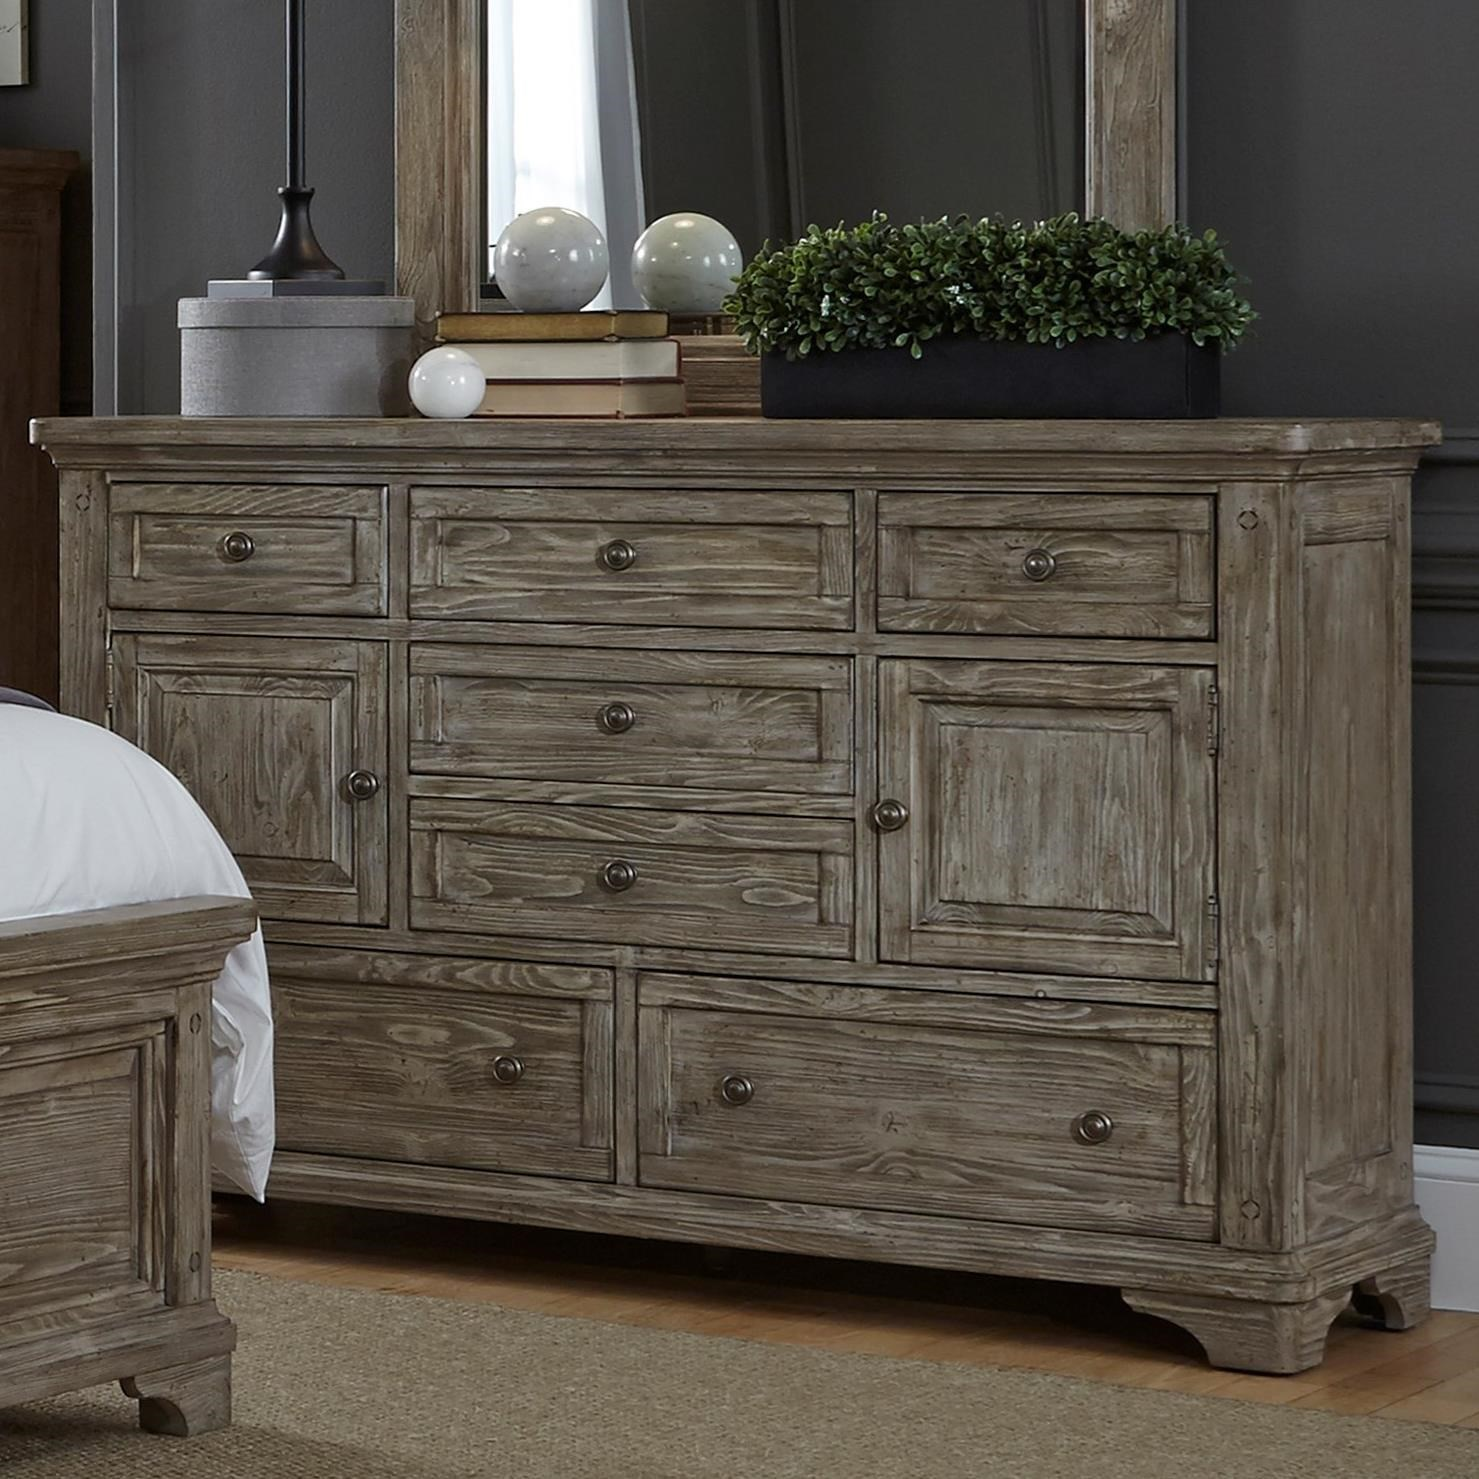 Etonnant Liberty Furniture Highlands 7 Drawer Dresser With 2 Doors